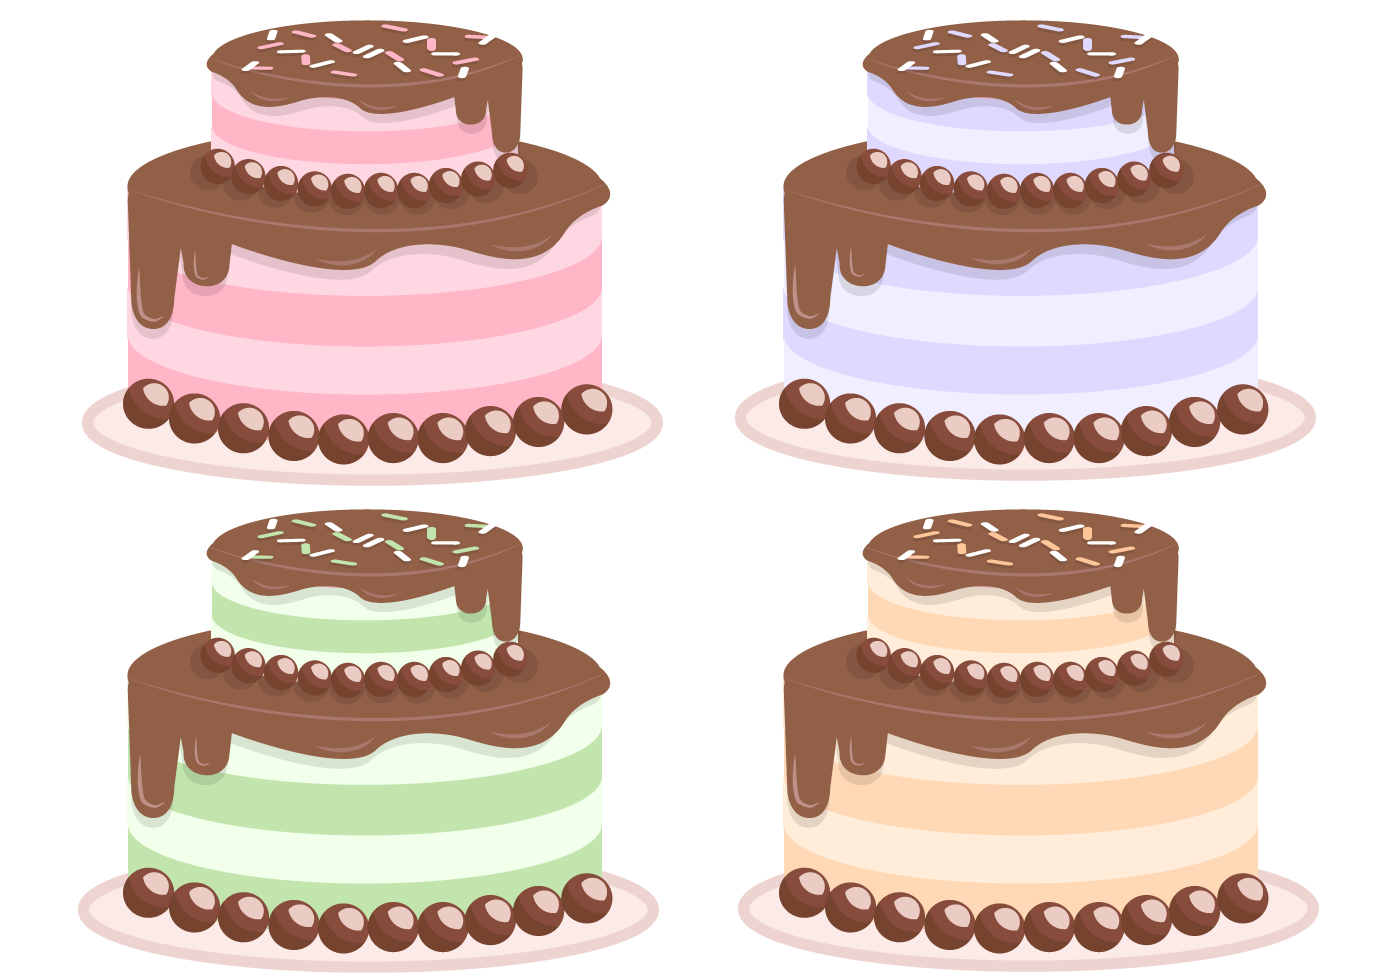 Cake Pictures Vector : Free Cake Vector - Download Free Vector Art, Stock ...